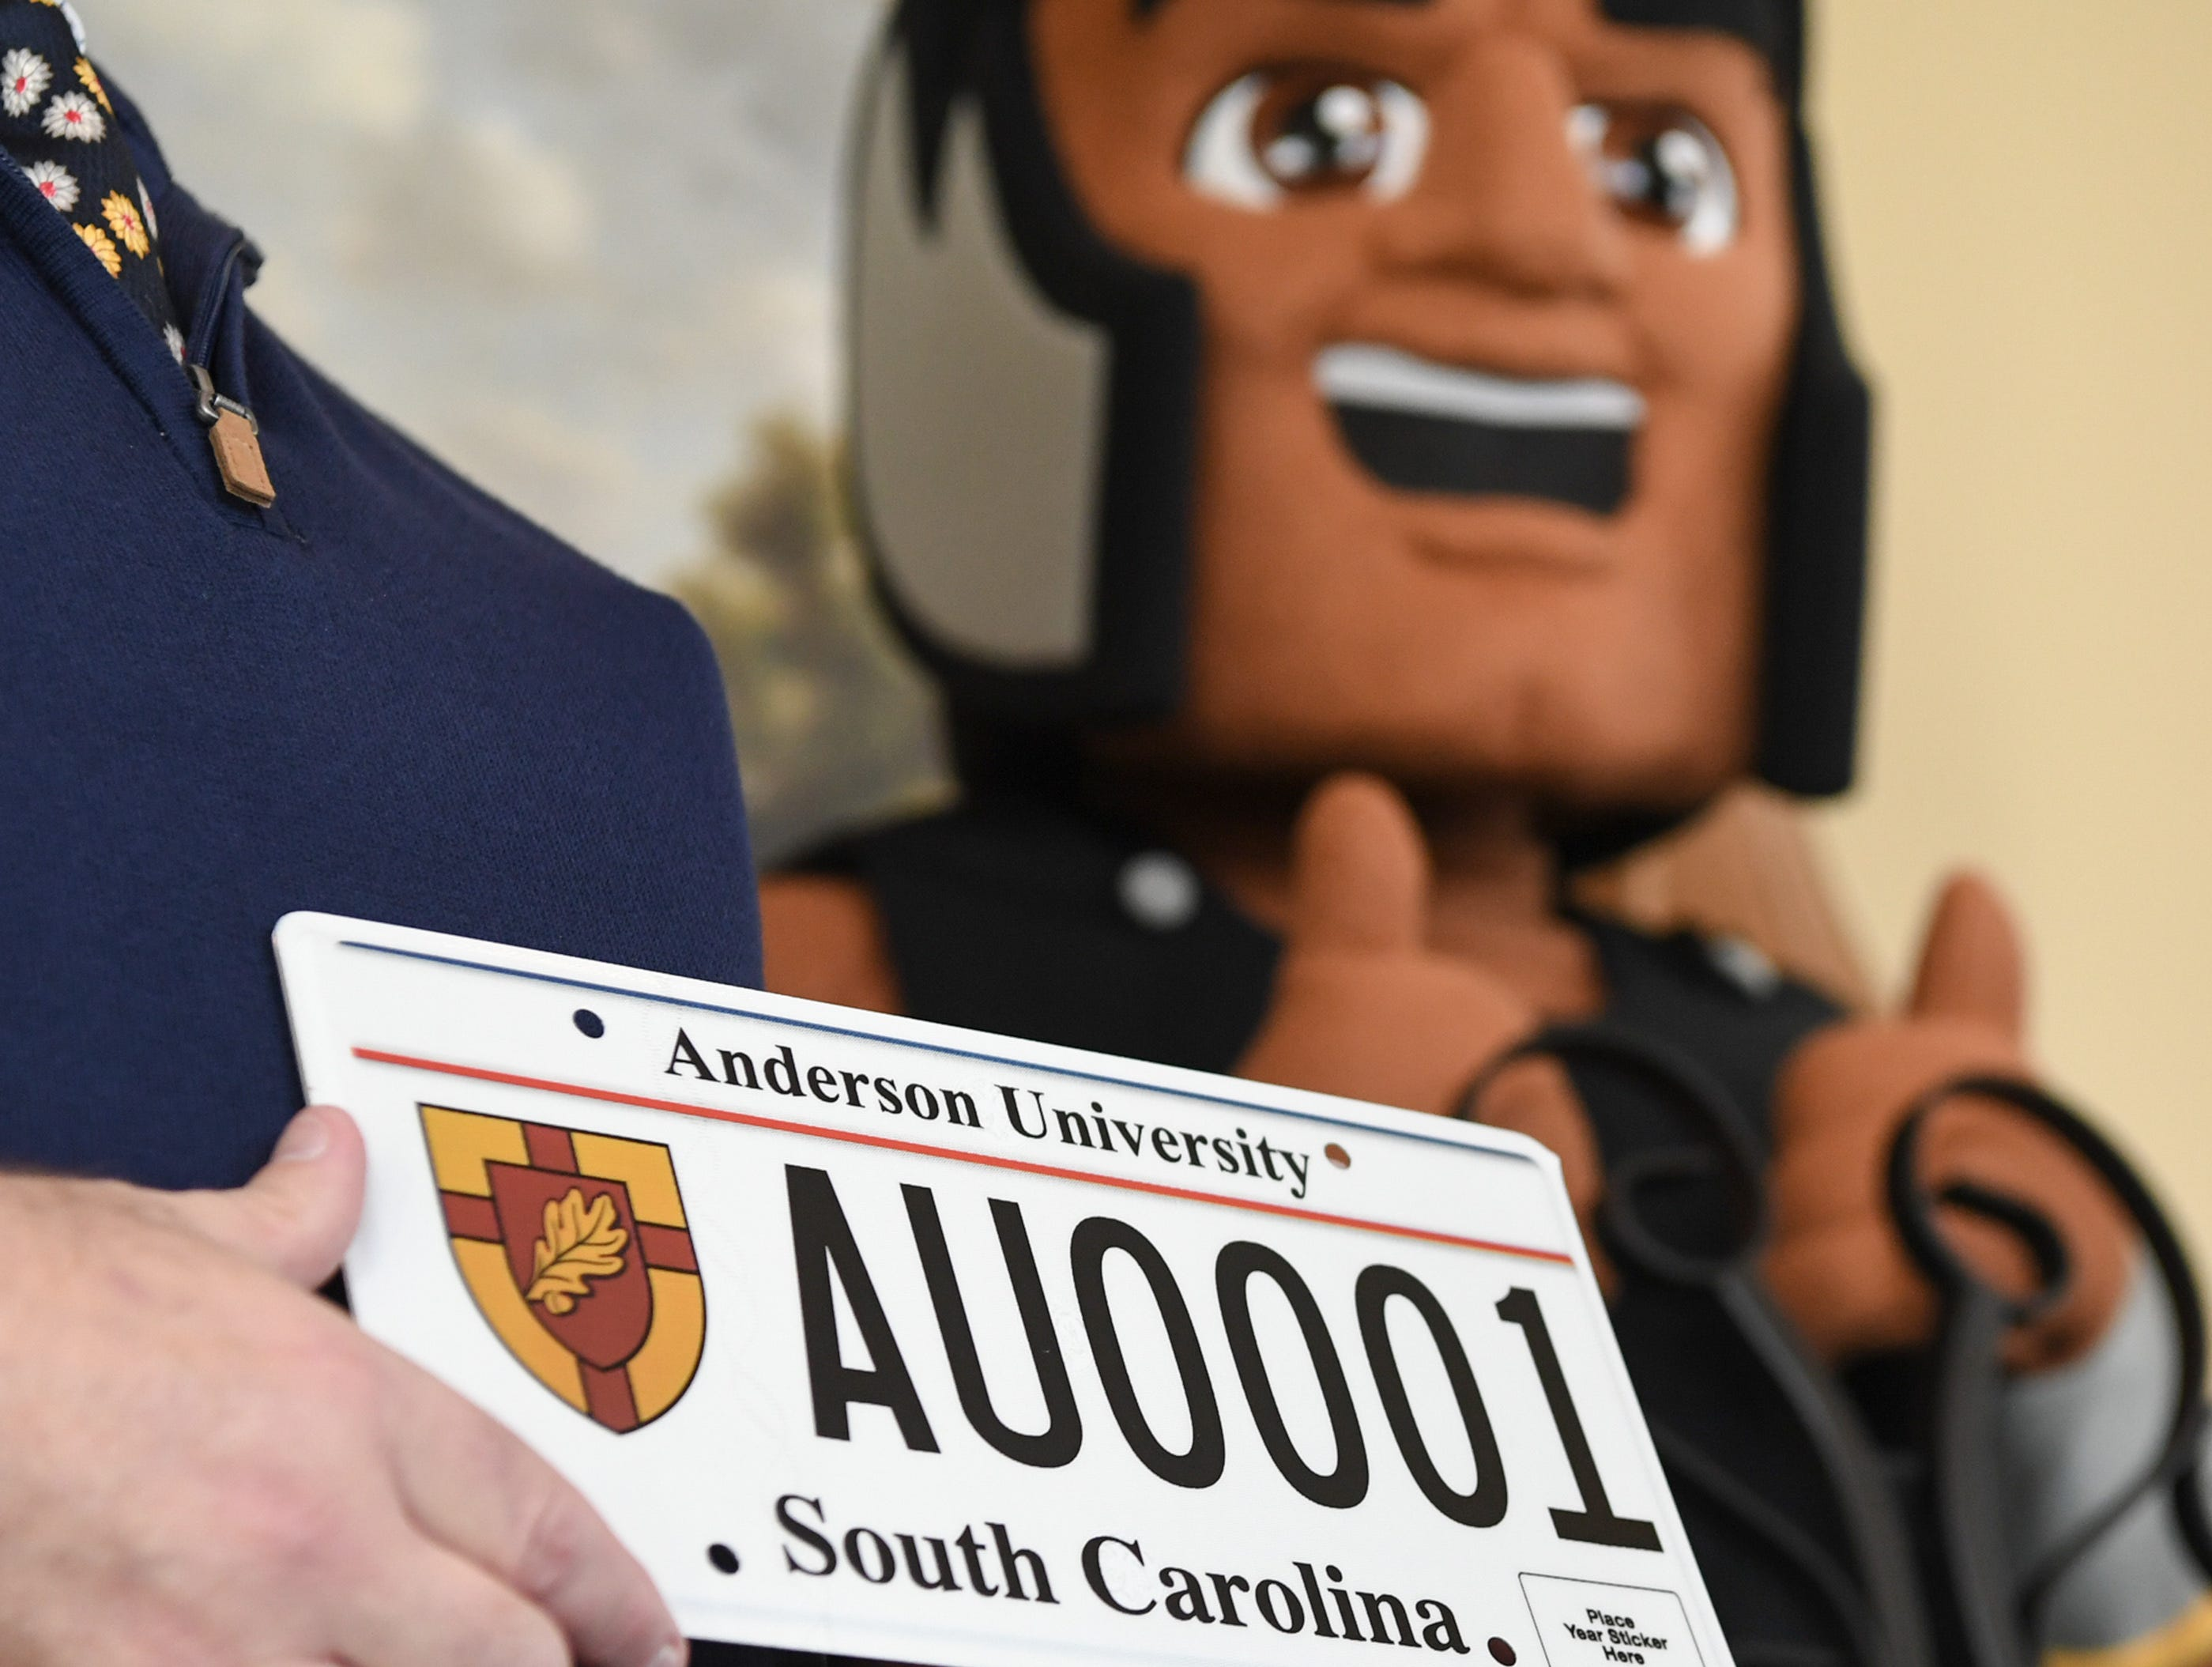 President Evans Whitaker of Anderson University shows other officials a new personalized license plate during a press conference at the campus administration building in Anderson Friday morning. The University plate, along with Clemson University and the University of South Carolina, are the only college or university plates available to personalize, said Perkins-Brown. The Anderson University plates can be applied for starting Monday, January 28, 2019 in person, not online, for $100 and an added fee if personalizing.